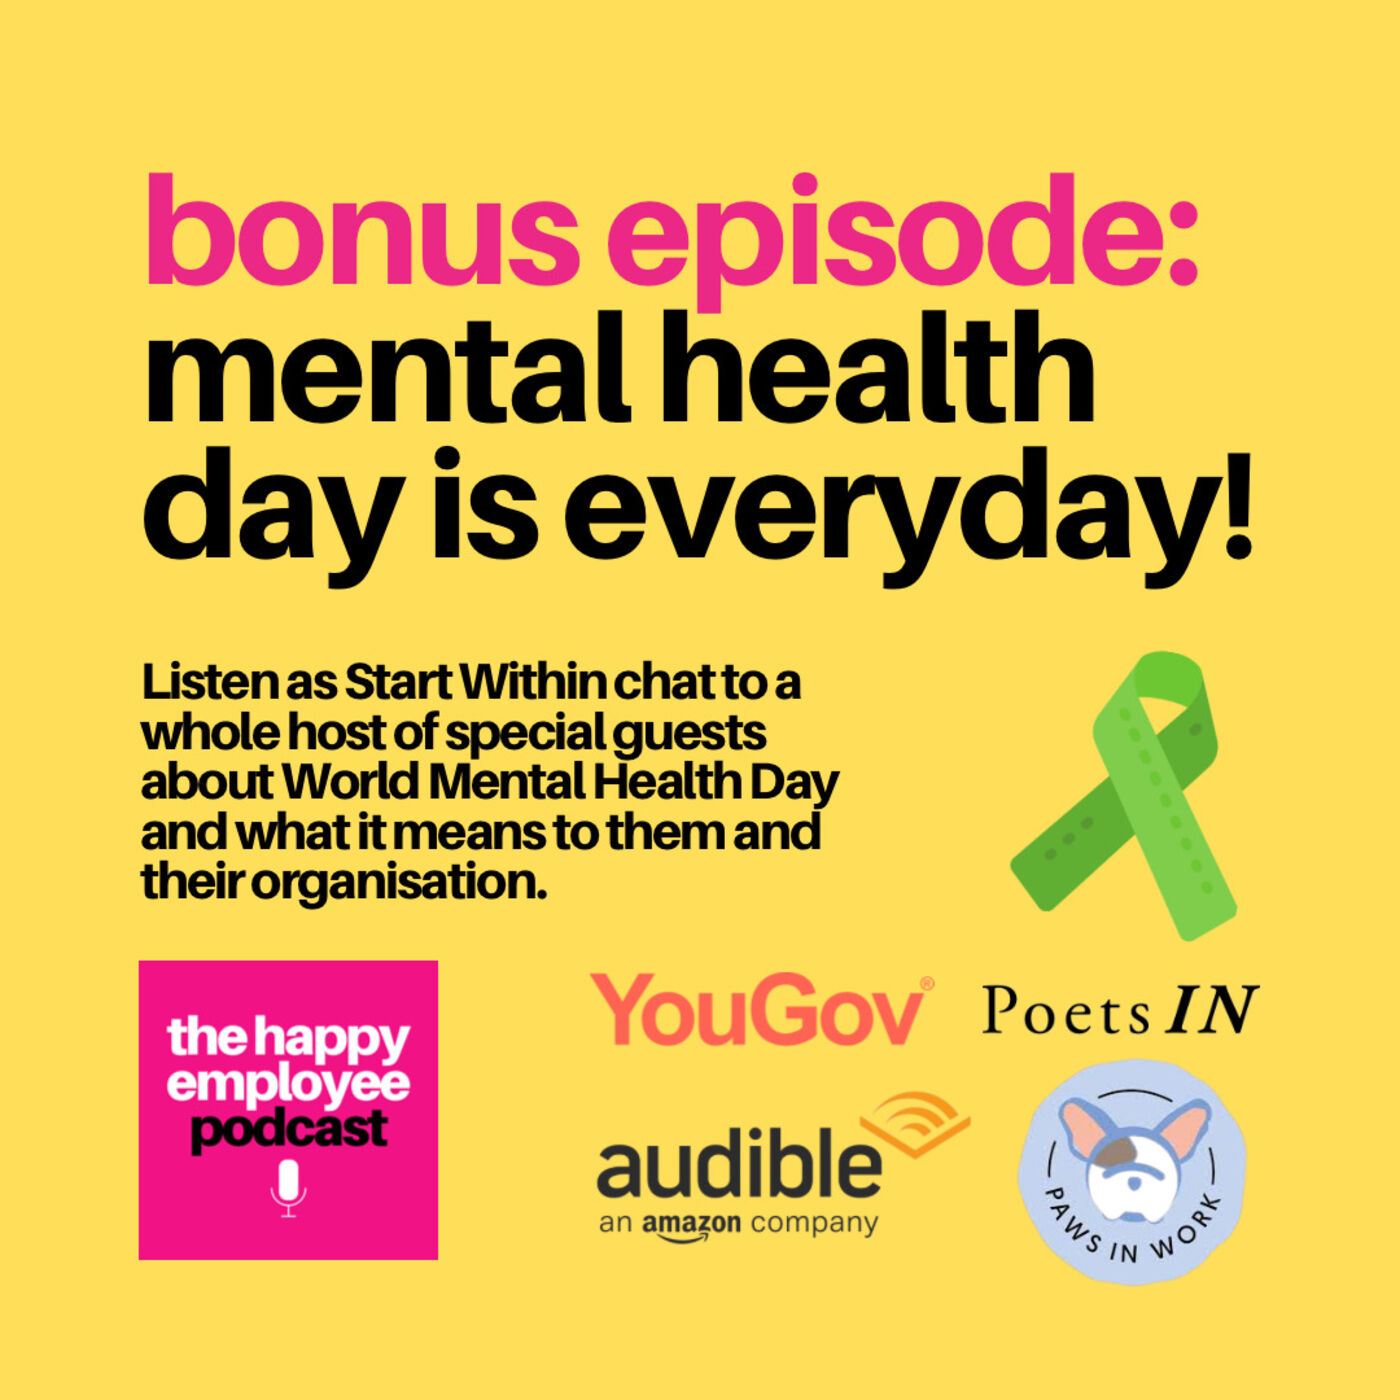 Mental Health Day is Everyday!